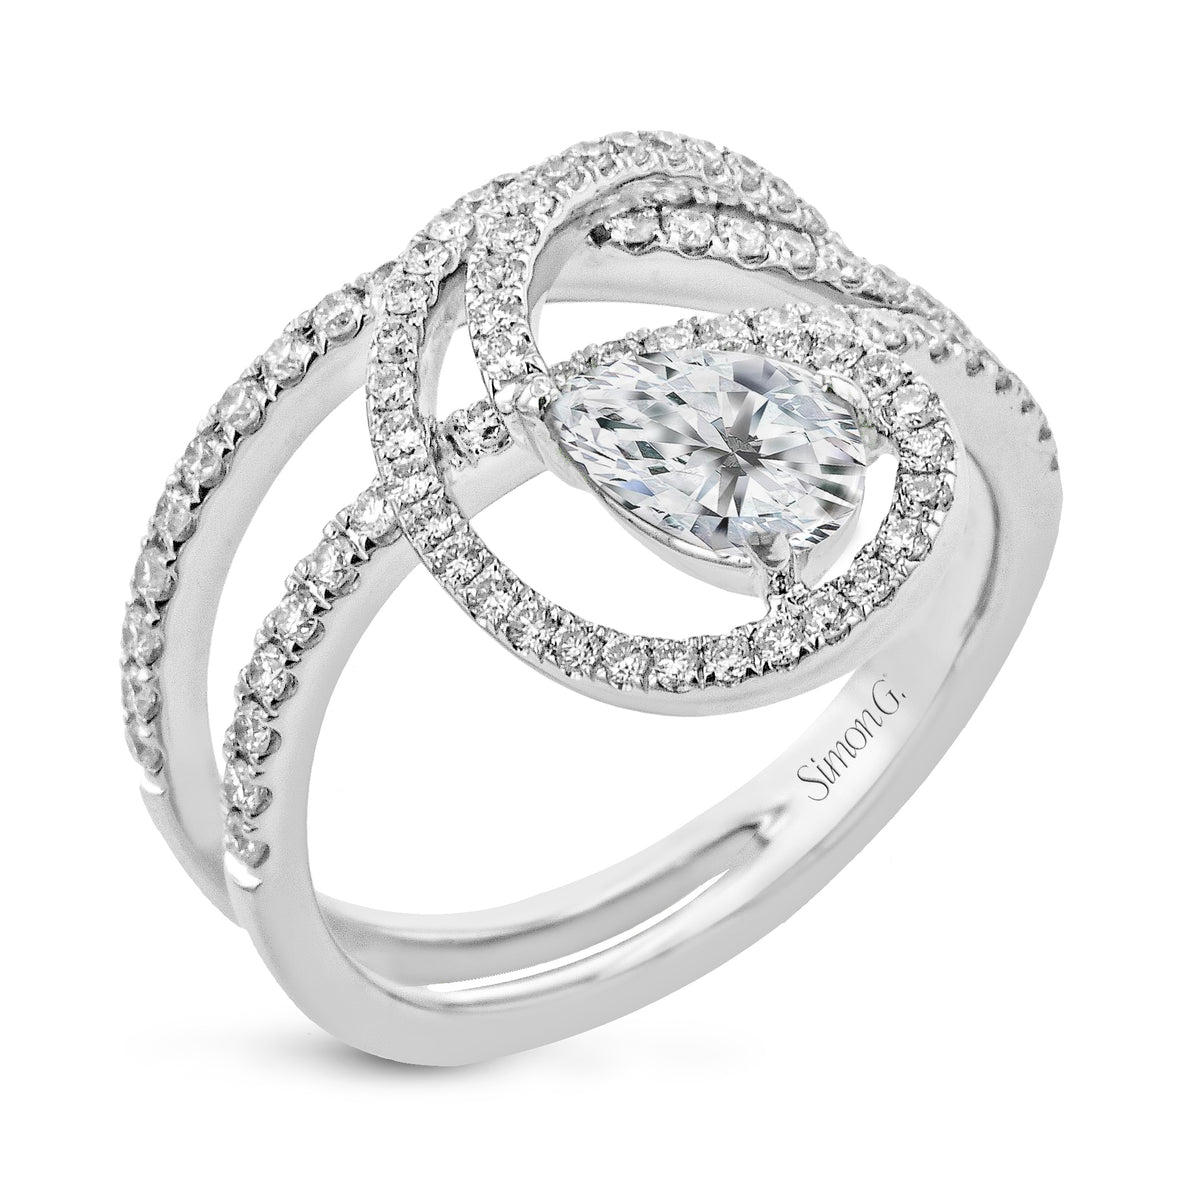 Simon G 18K White Gold Pear Shape Diamond Ring